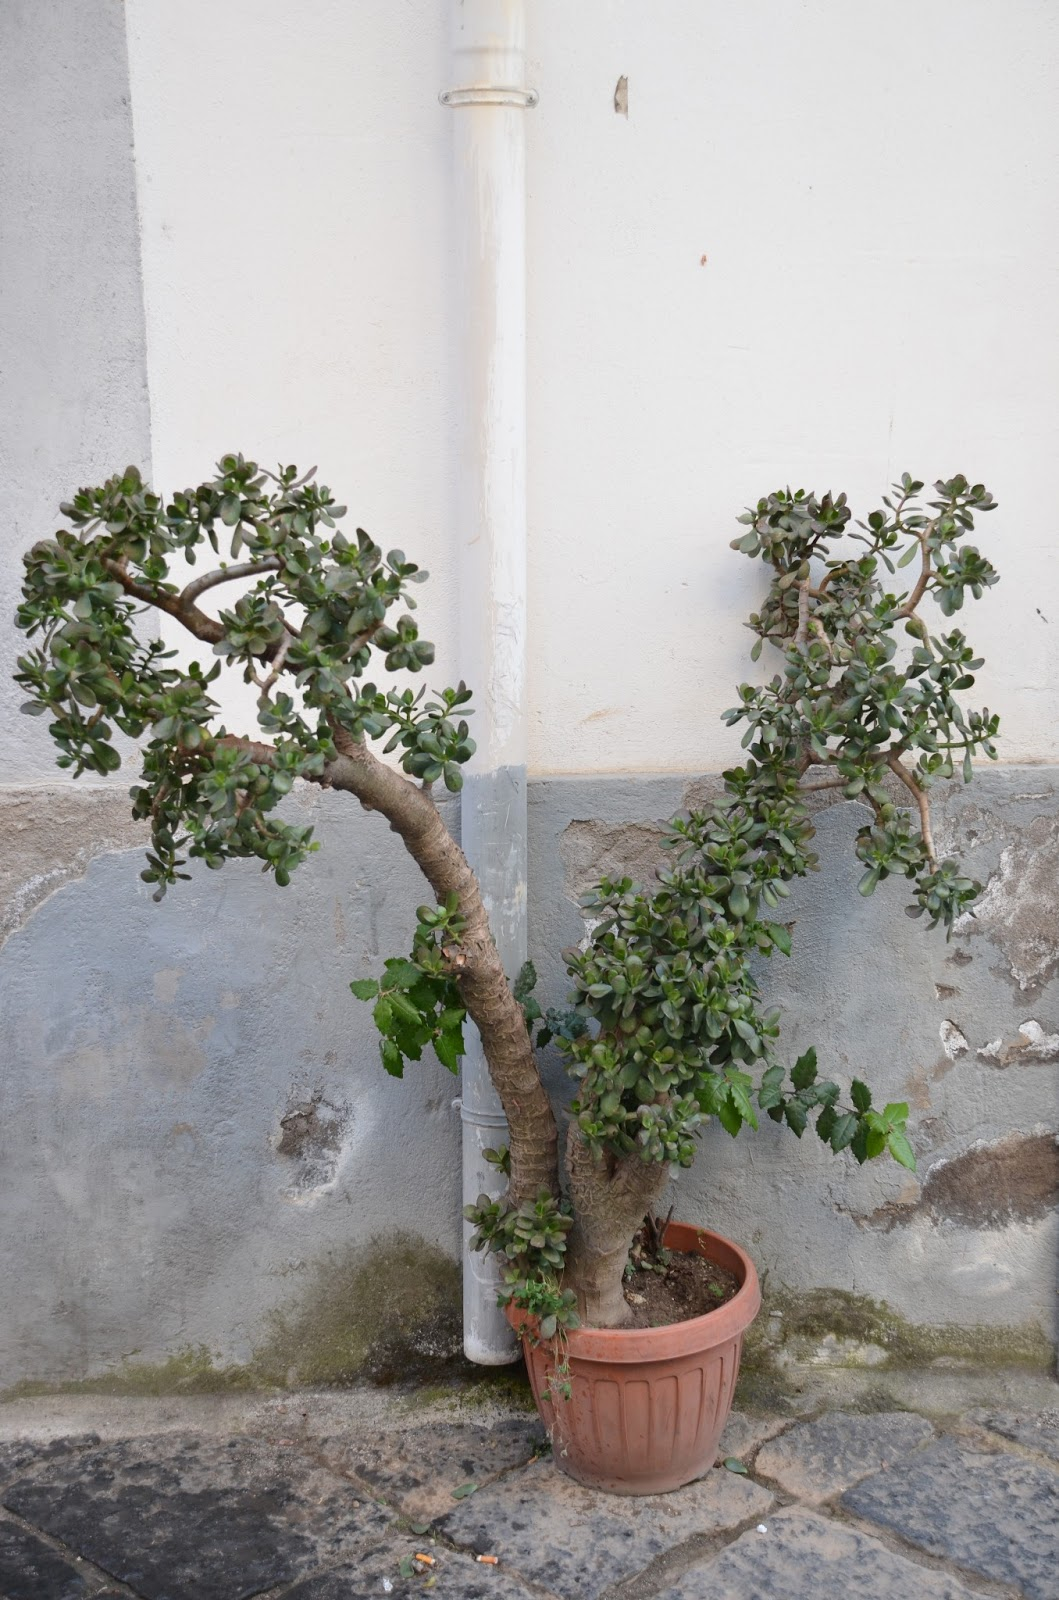 HOW TO CARE FOR THE JADE PLANT The Garden Of Eaden